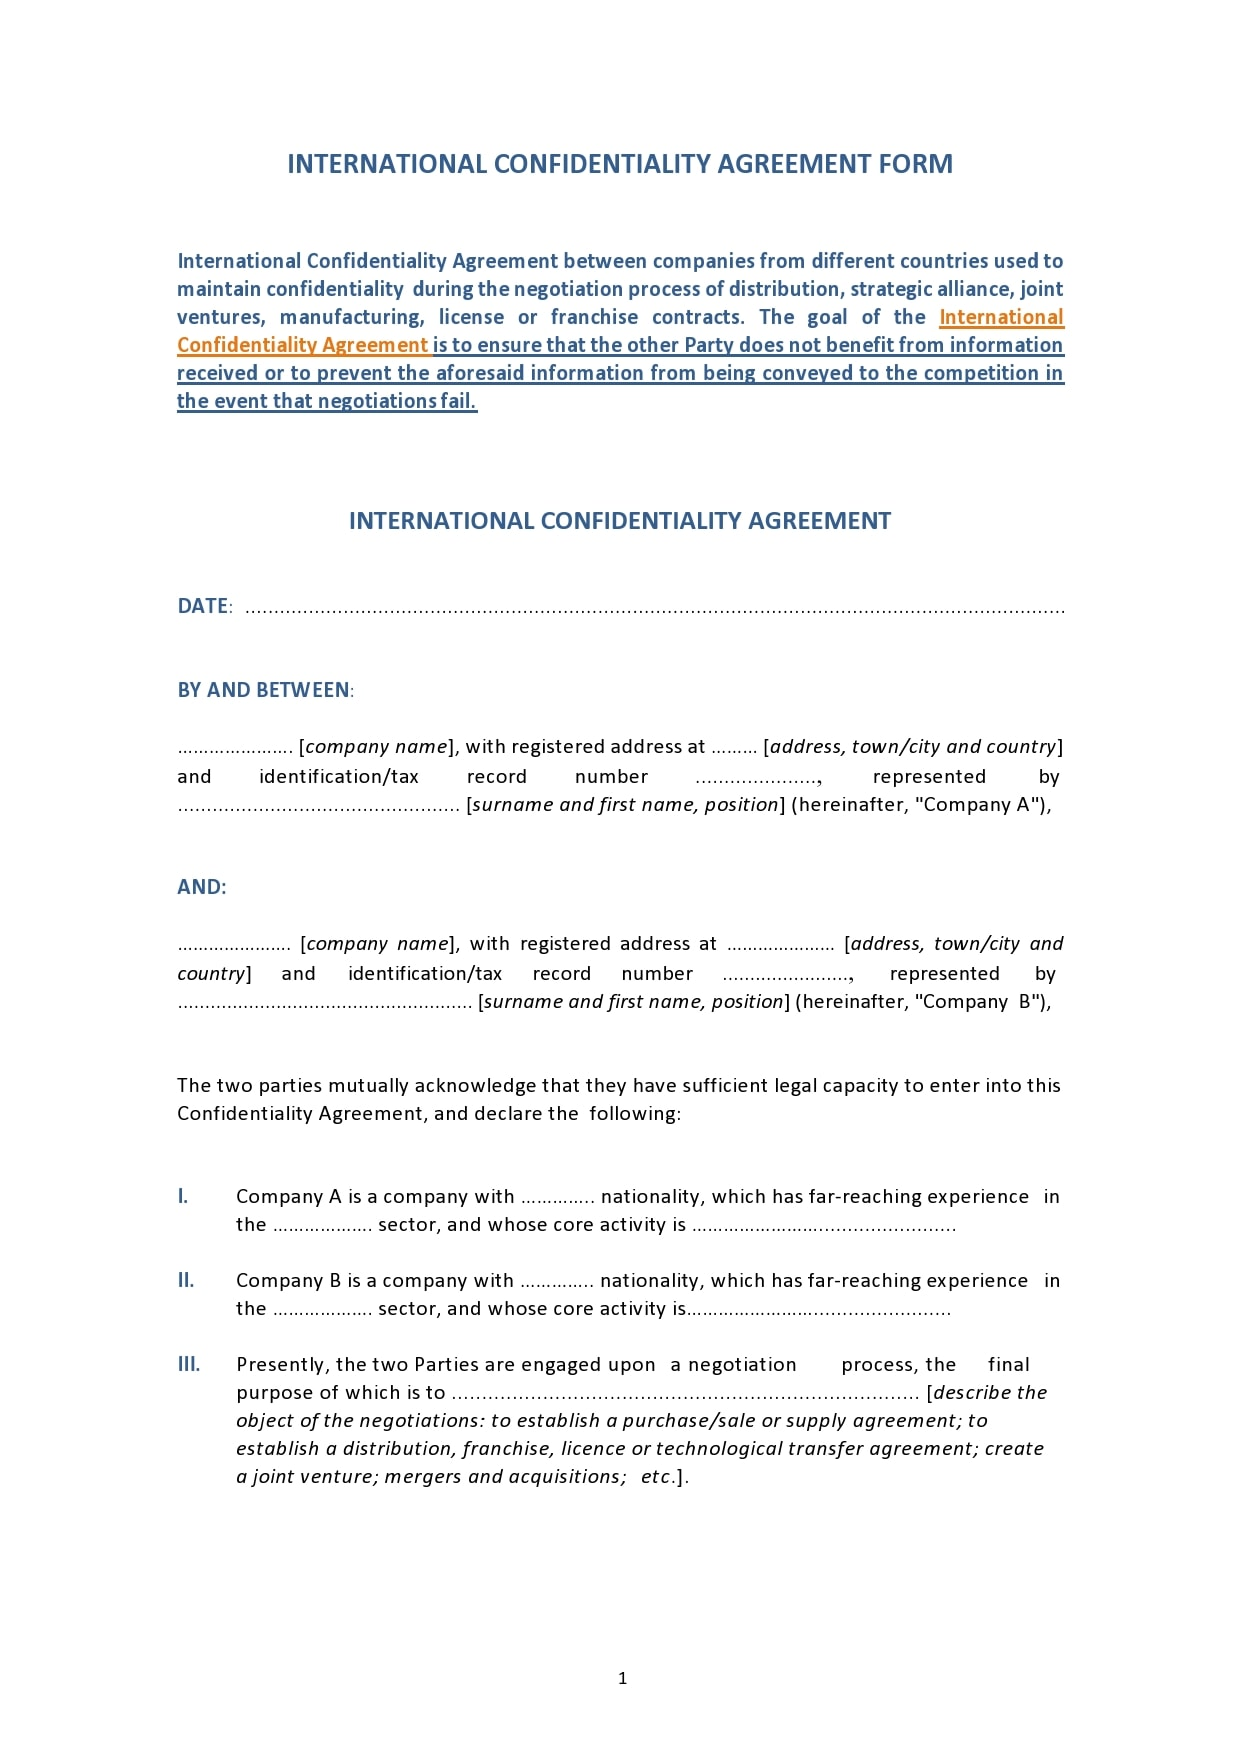 Sample format international non disclosure agreement template excel word pdf doc xls blank tips: 45 Free Confidentiality Agreement Templates Nda Templatearchive